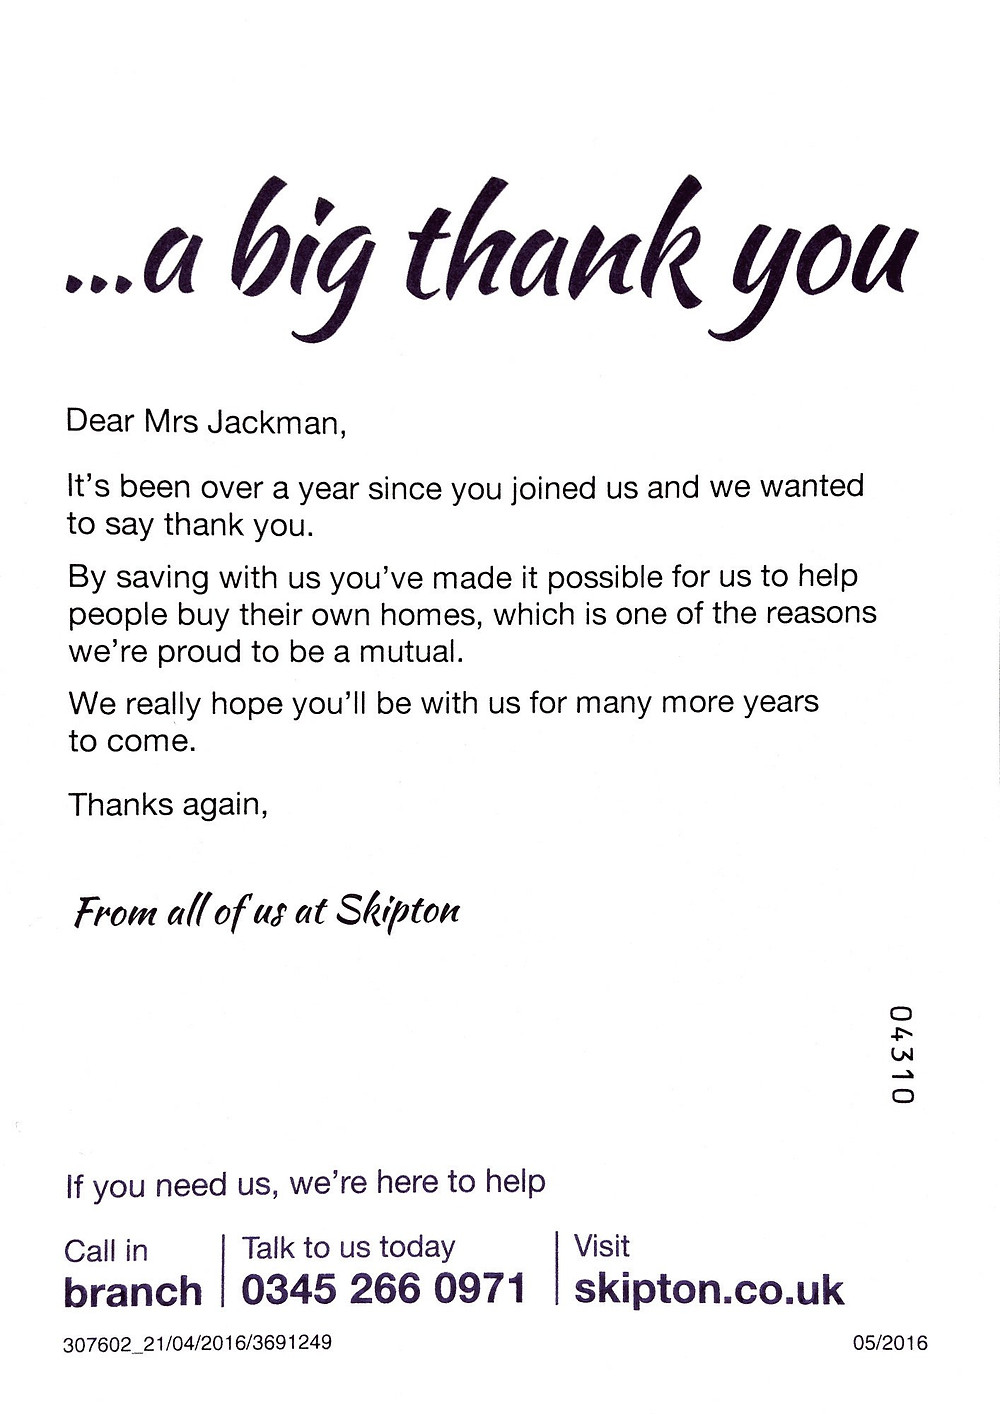 Thank you note from Skipton